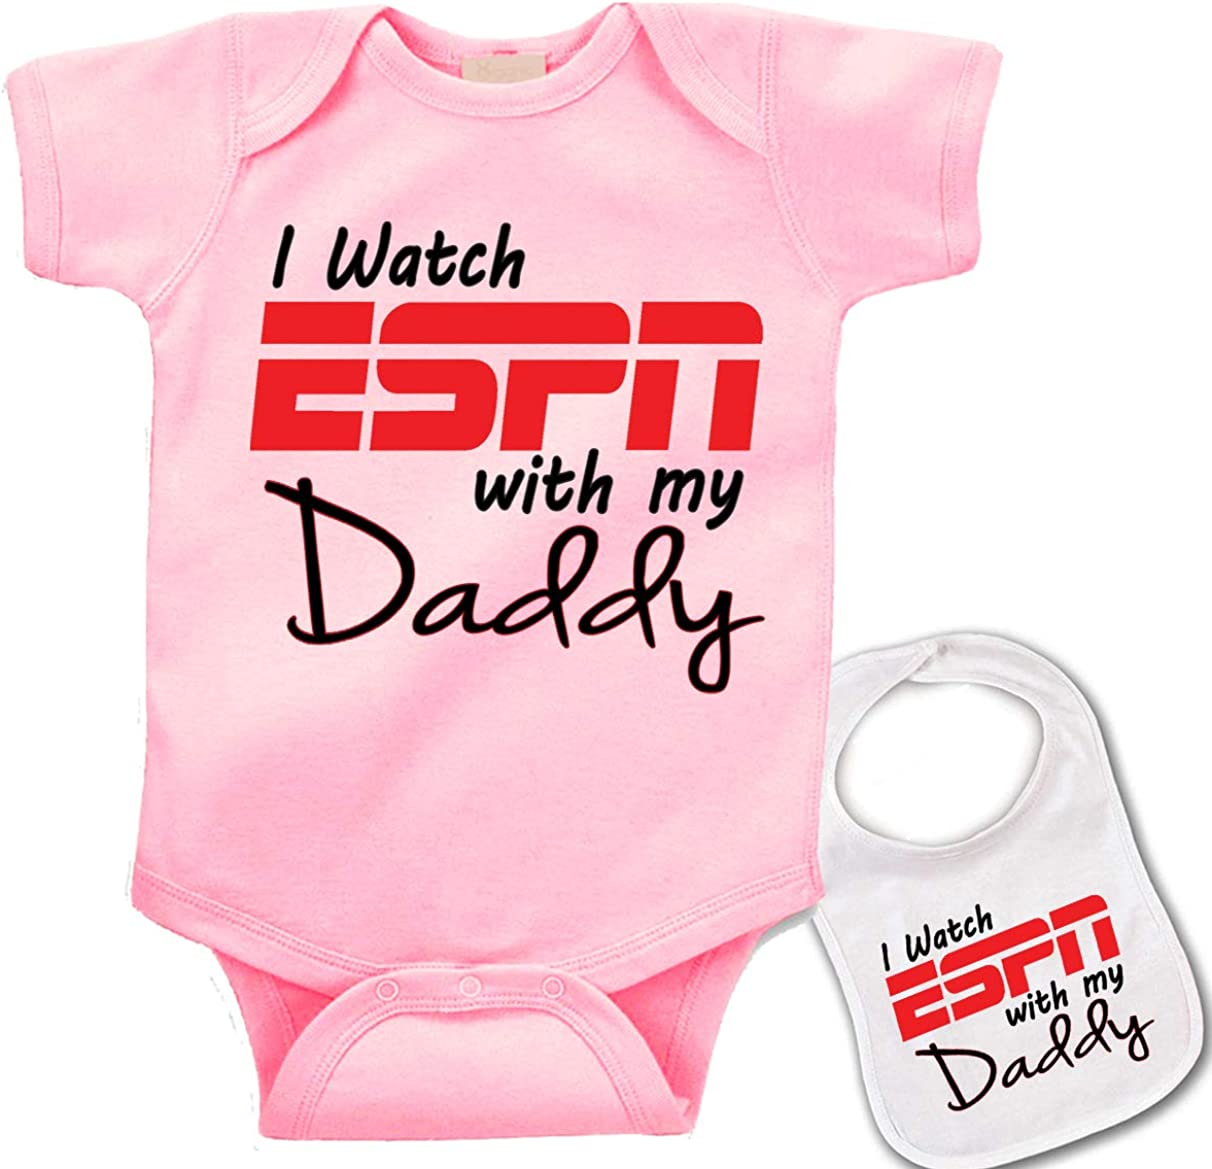 I/'m Watching The Football Game With Daddy Baby Onesie